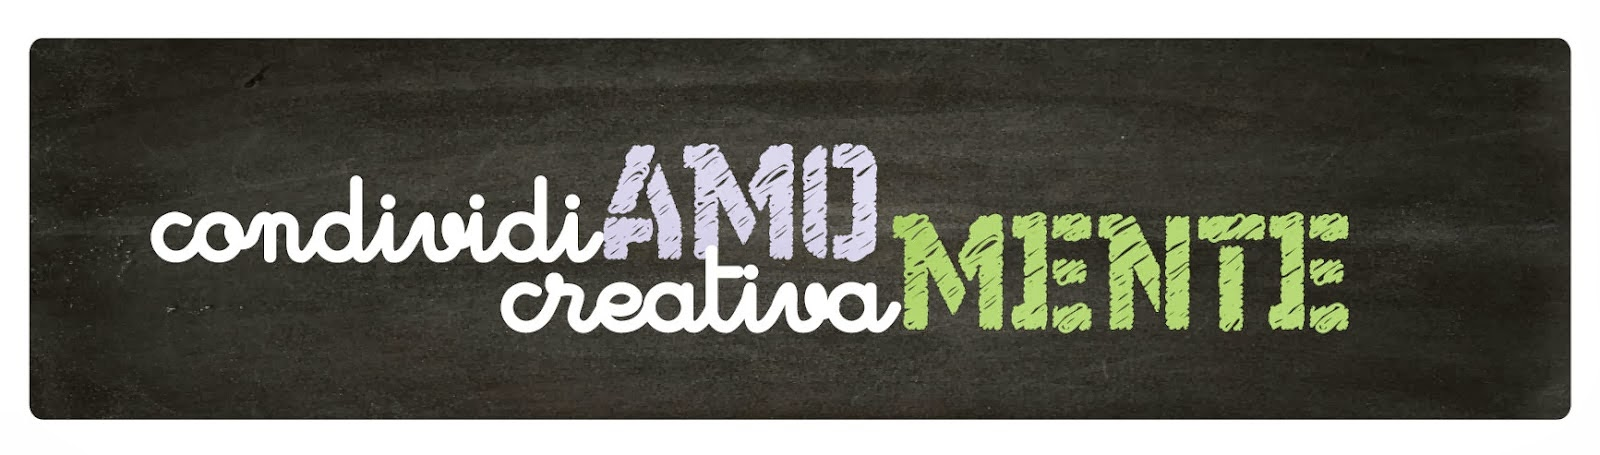 http://persfiziomanonsolo.blogspot.it/search/label/Condividiamo%20Creativamente